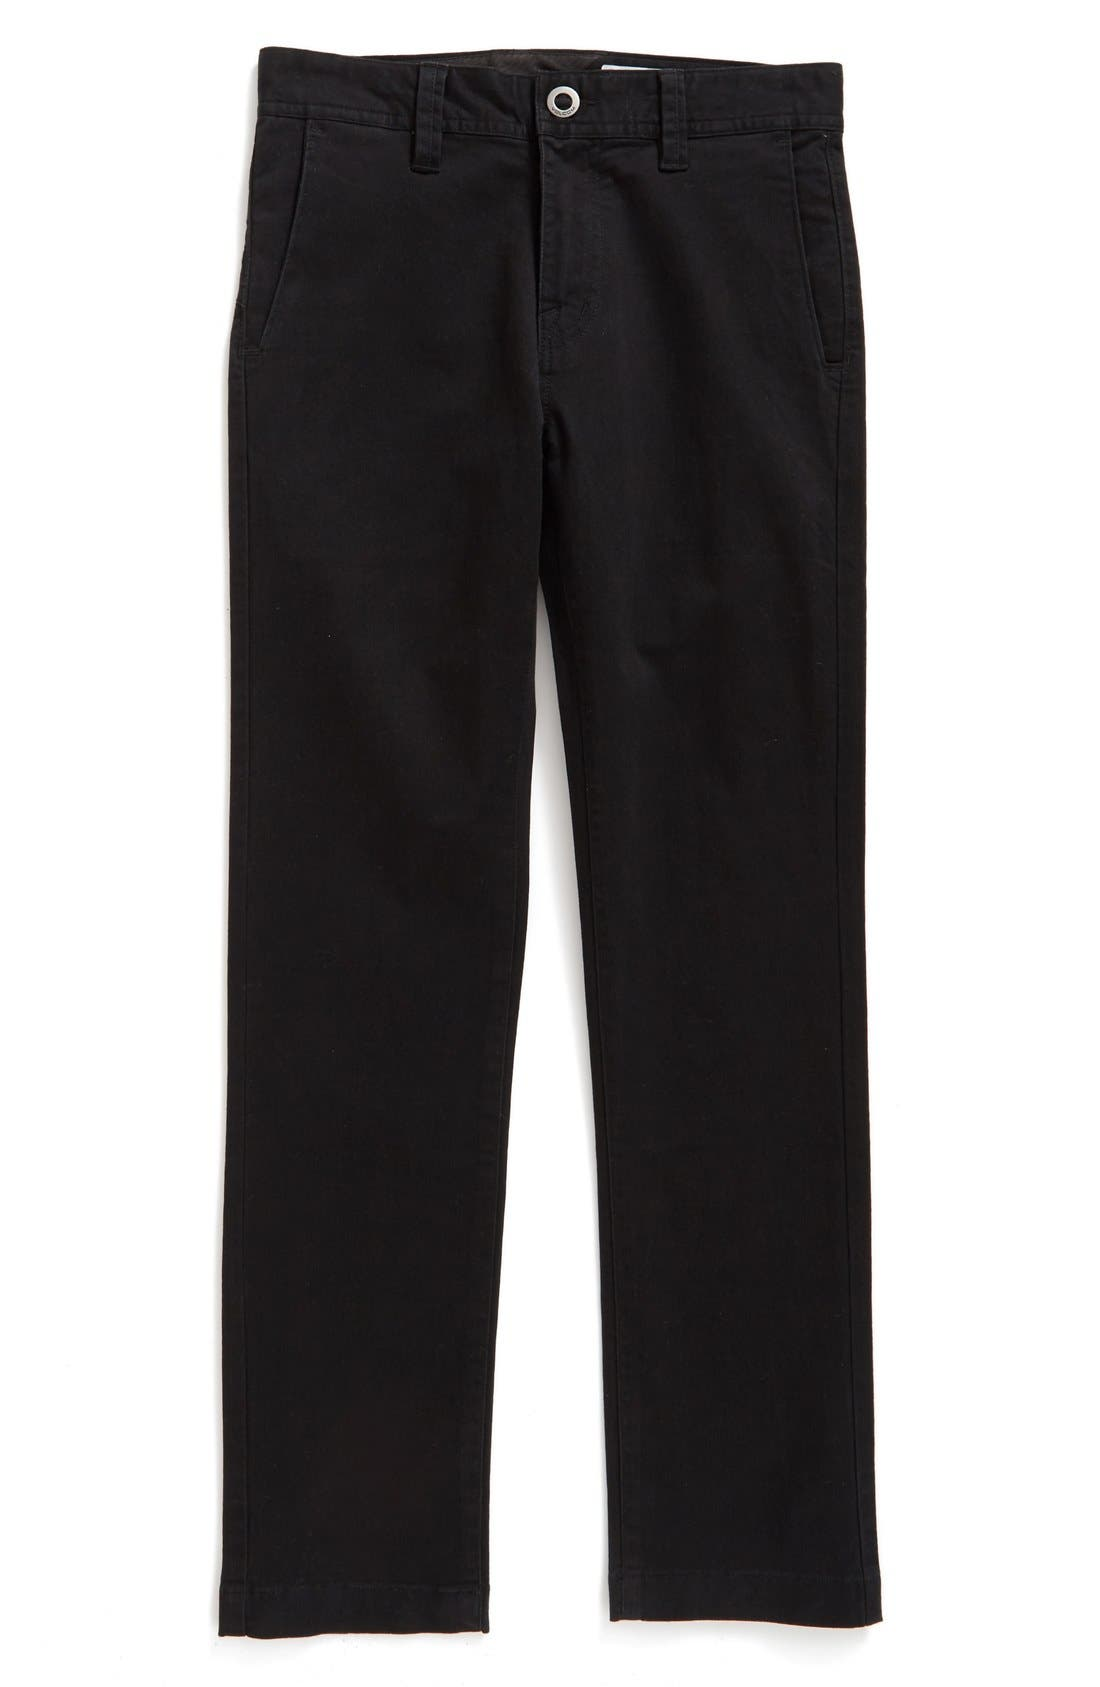 Alternate Image 1 Selected - Volcom Slim Fit Stretch Chinos (Toddler Boys, Little Boys & Big Boys)